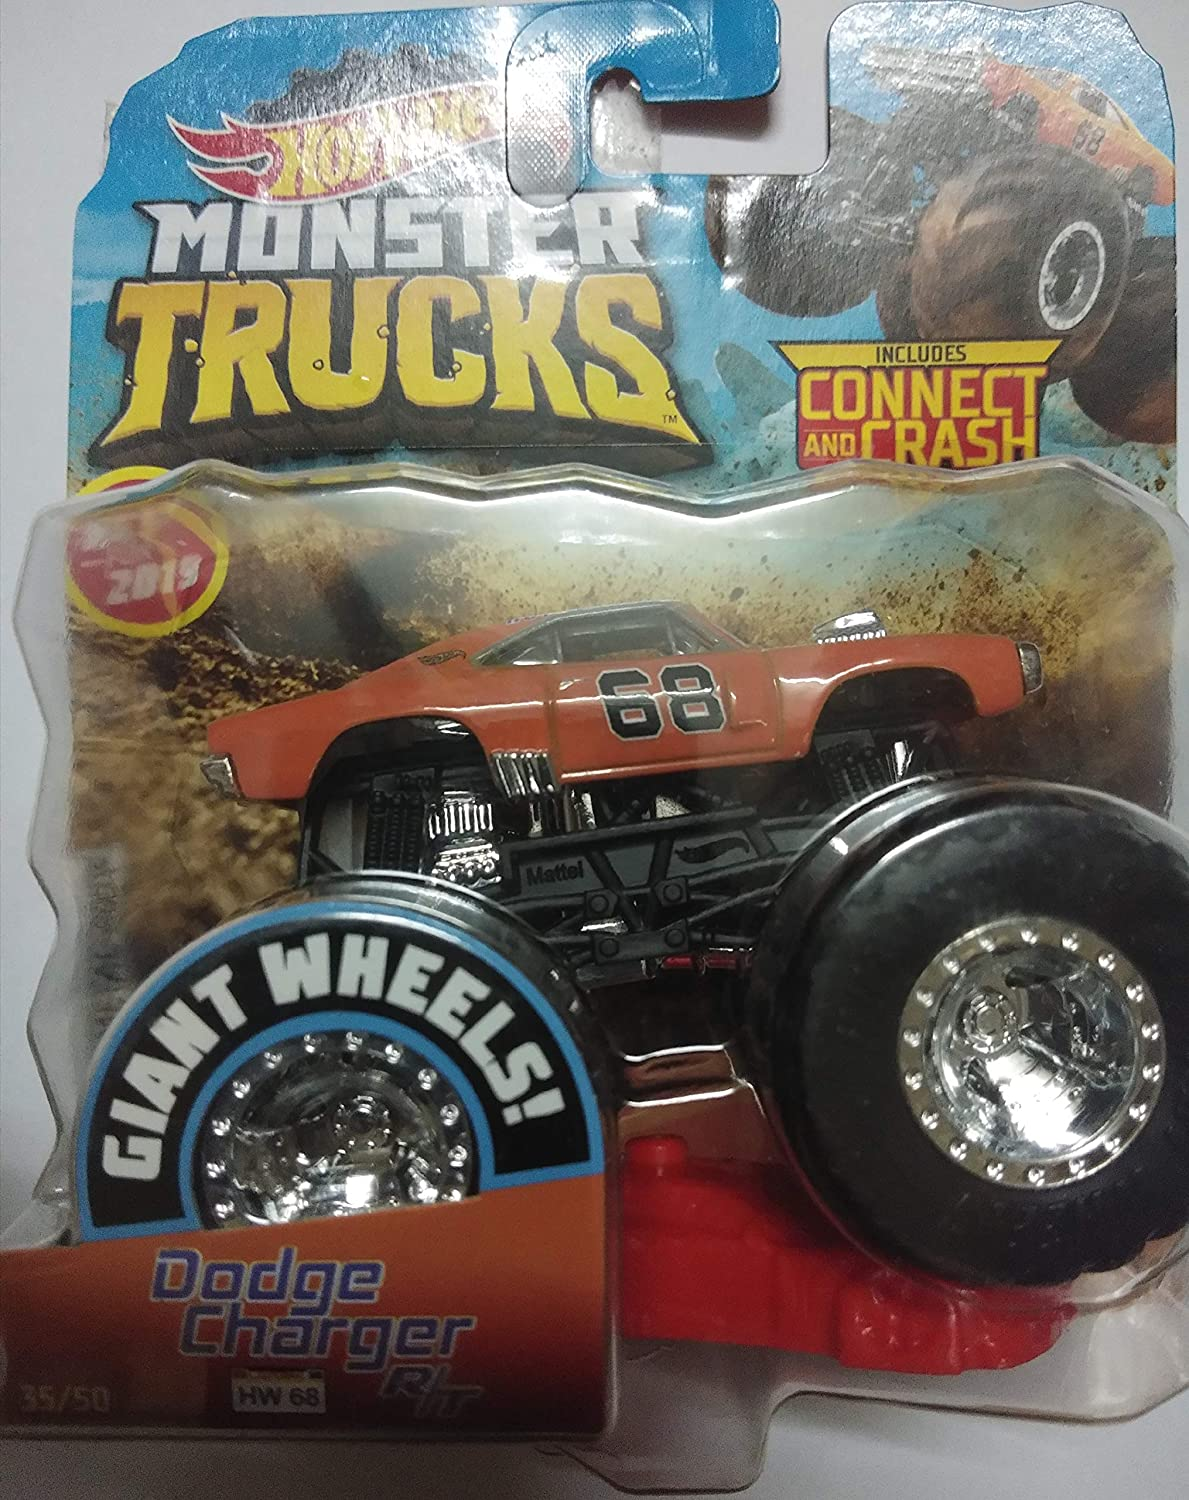 Buy Hot Wheels Mattel Dodge Charger R T 68 Giant Wheels Monster Trucks Include Connect And Crash Car Orange Online At Low Prices In India Amazon In